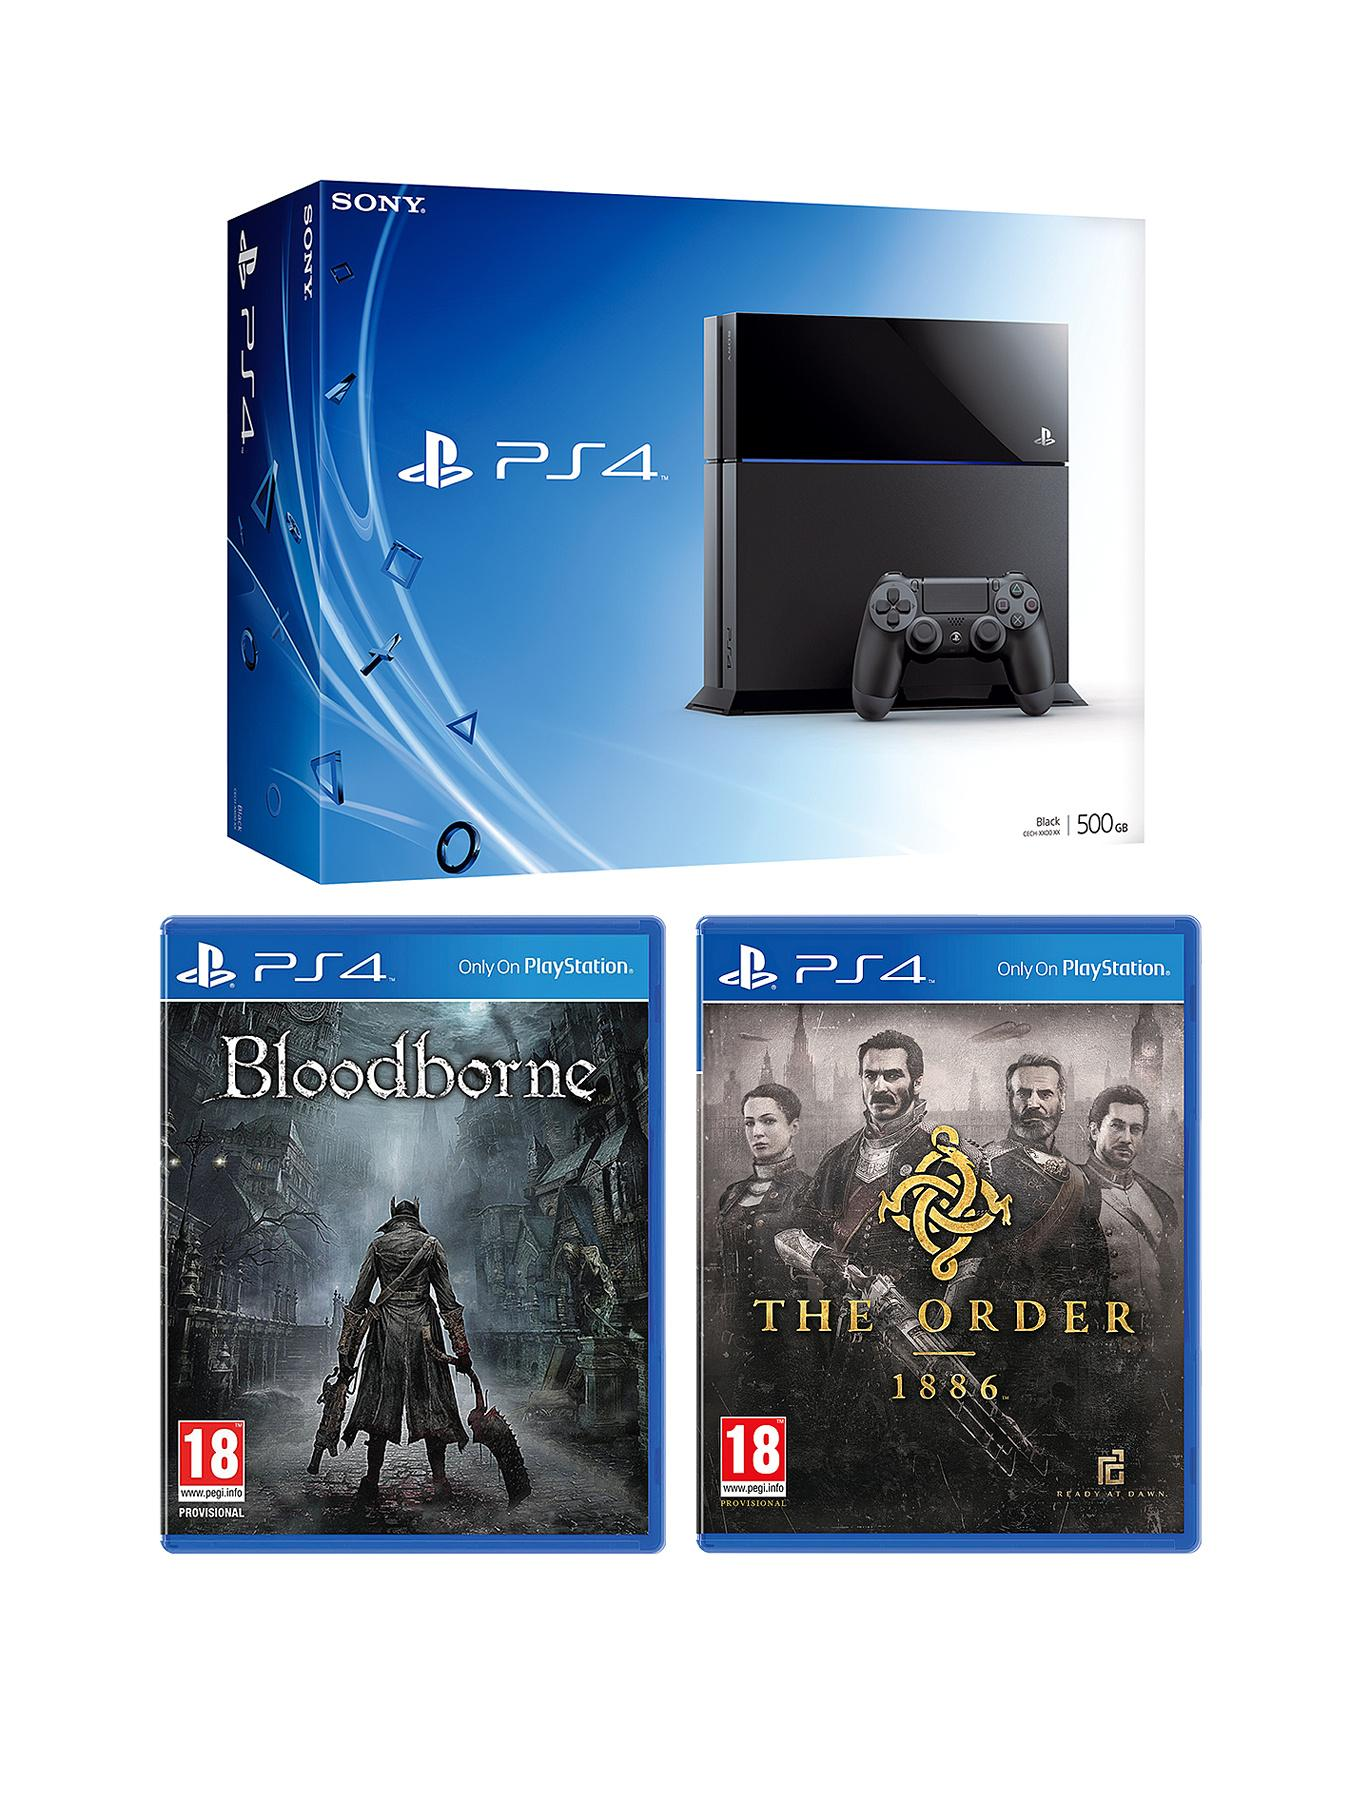 Playstation 4 Console with The Order: 1886, Bloodborne and Optional 12 Months Playstation Plus or DualShock 4 Controller